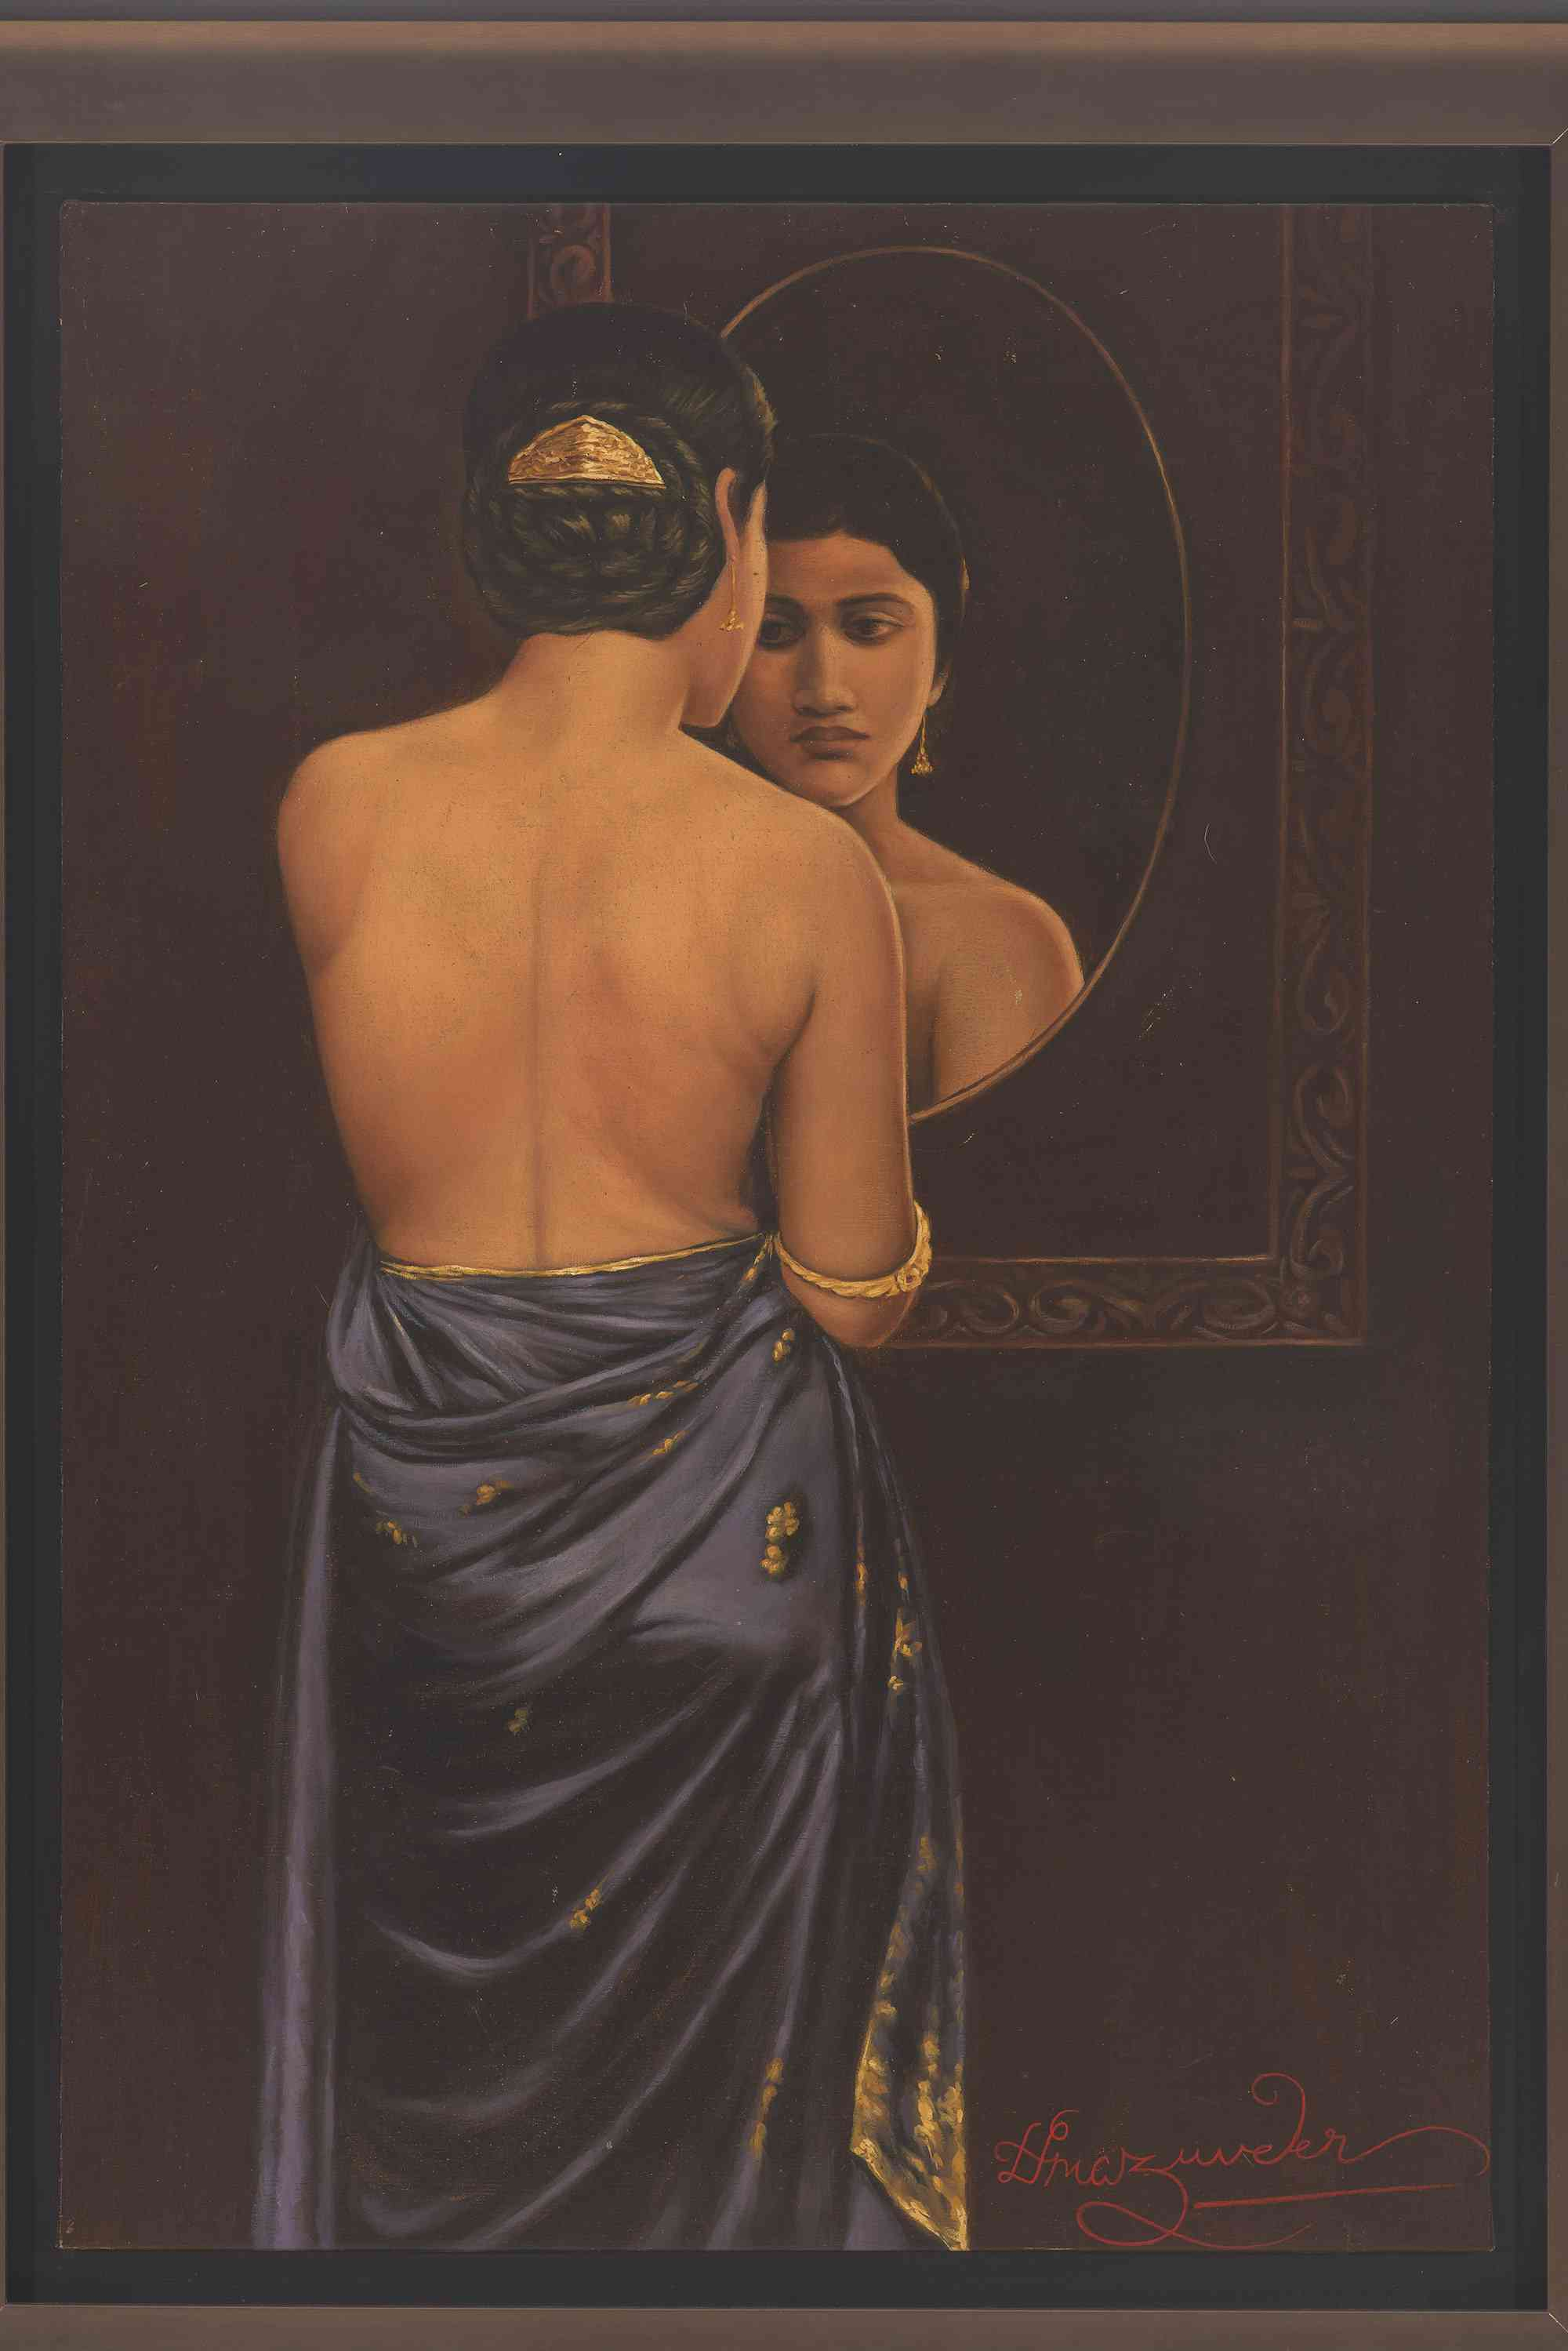 'Image', 86.4x60.3 cm, oil on canvas. Image courtesy: Kumar Collection.